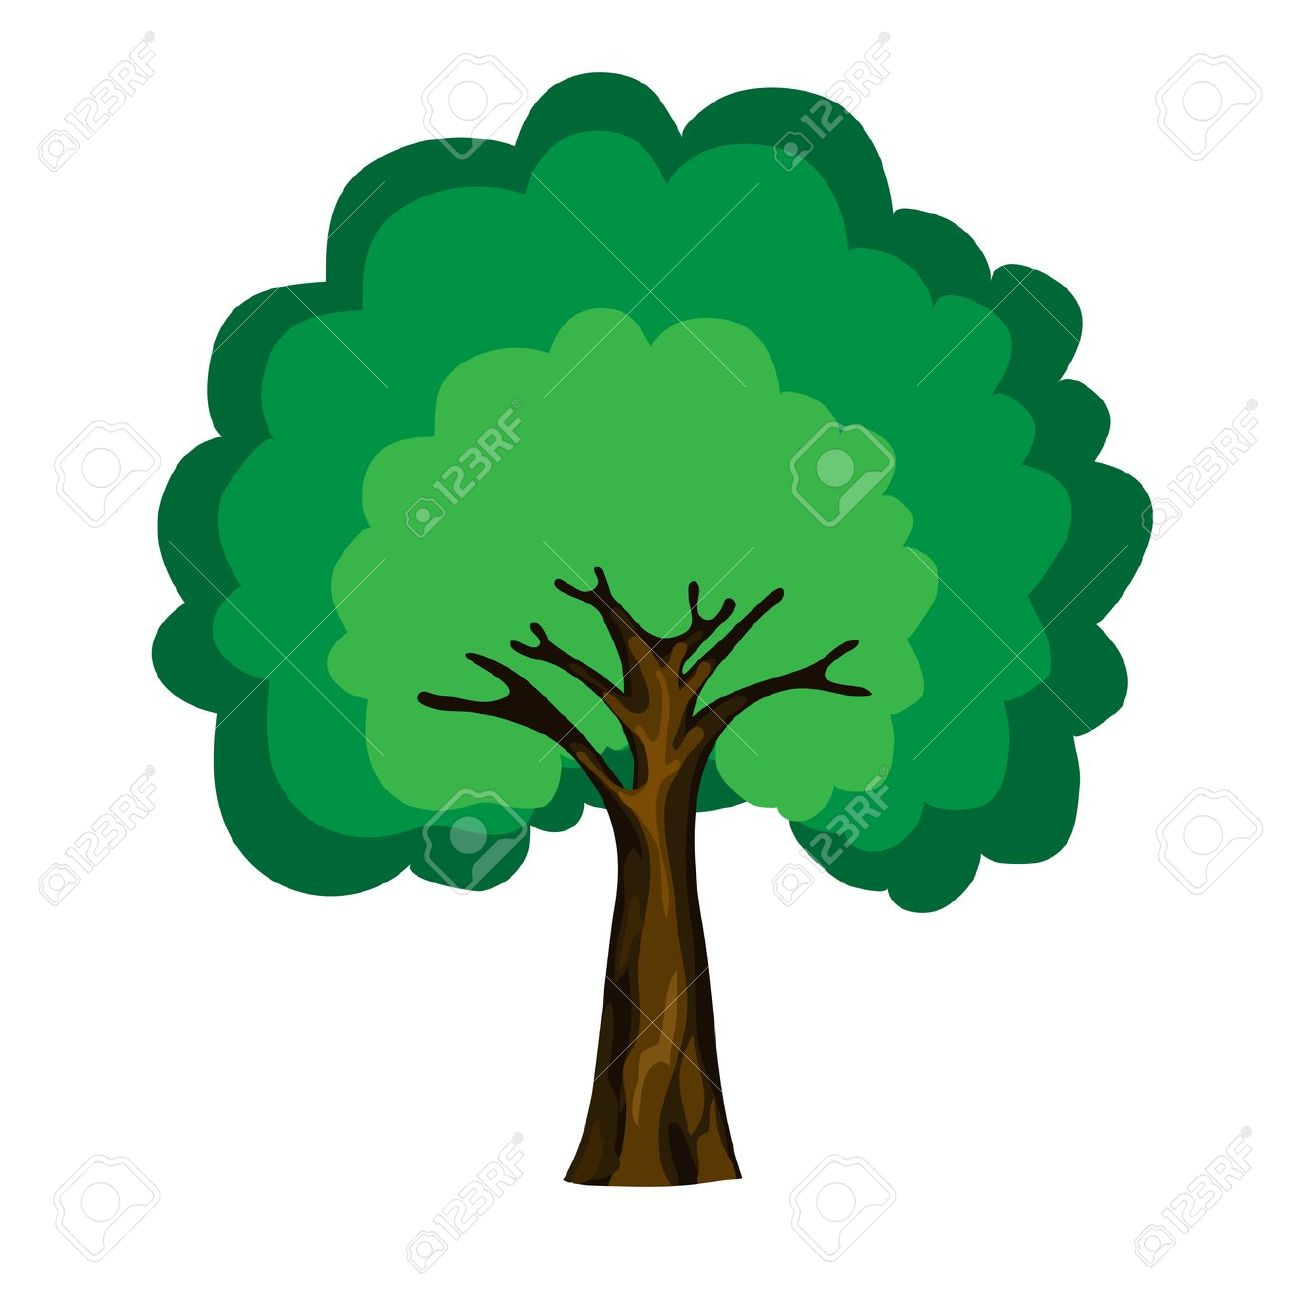 Deciduous trees clipart clipground